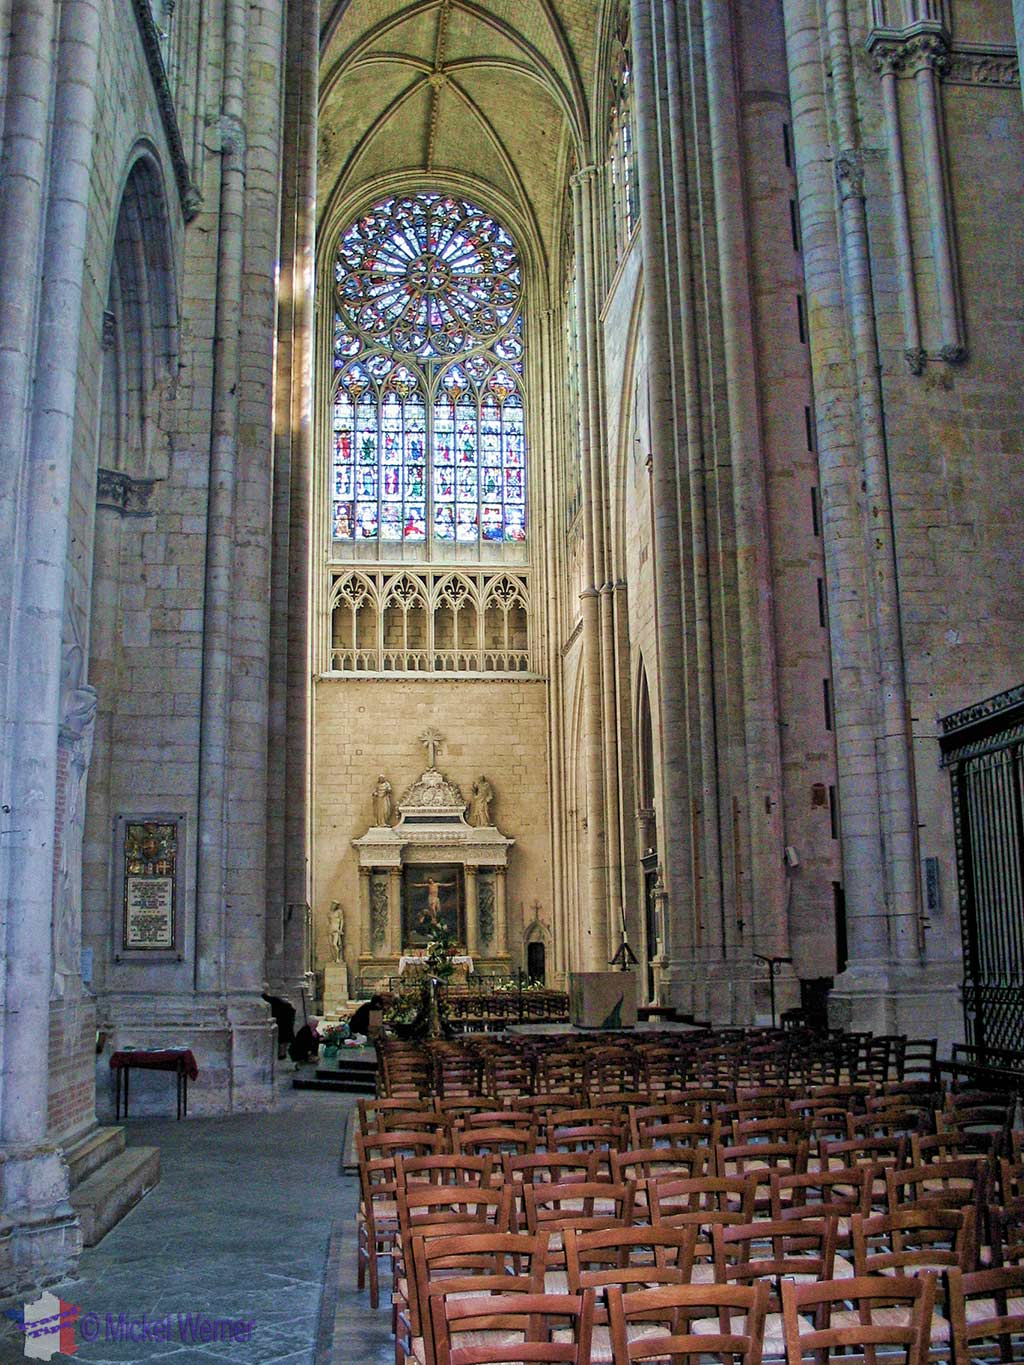 Inside the Saint-Julien cathedral of Le Mans